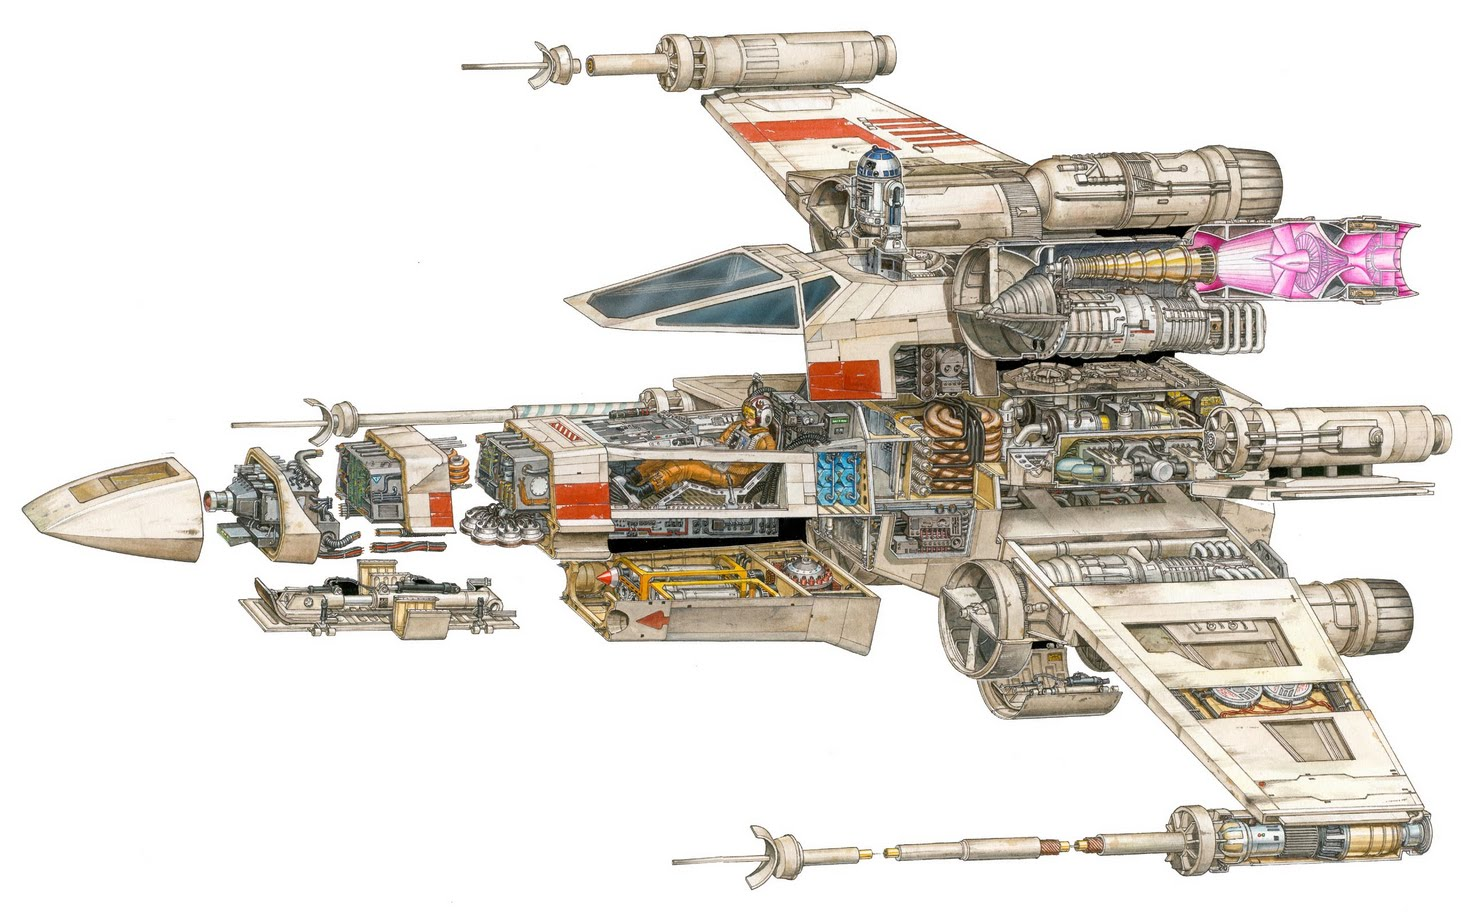 T-65C-A2 X-wing starfighter/Legends